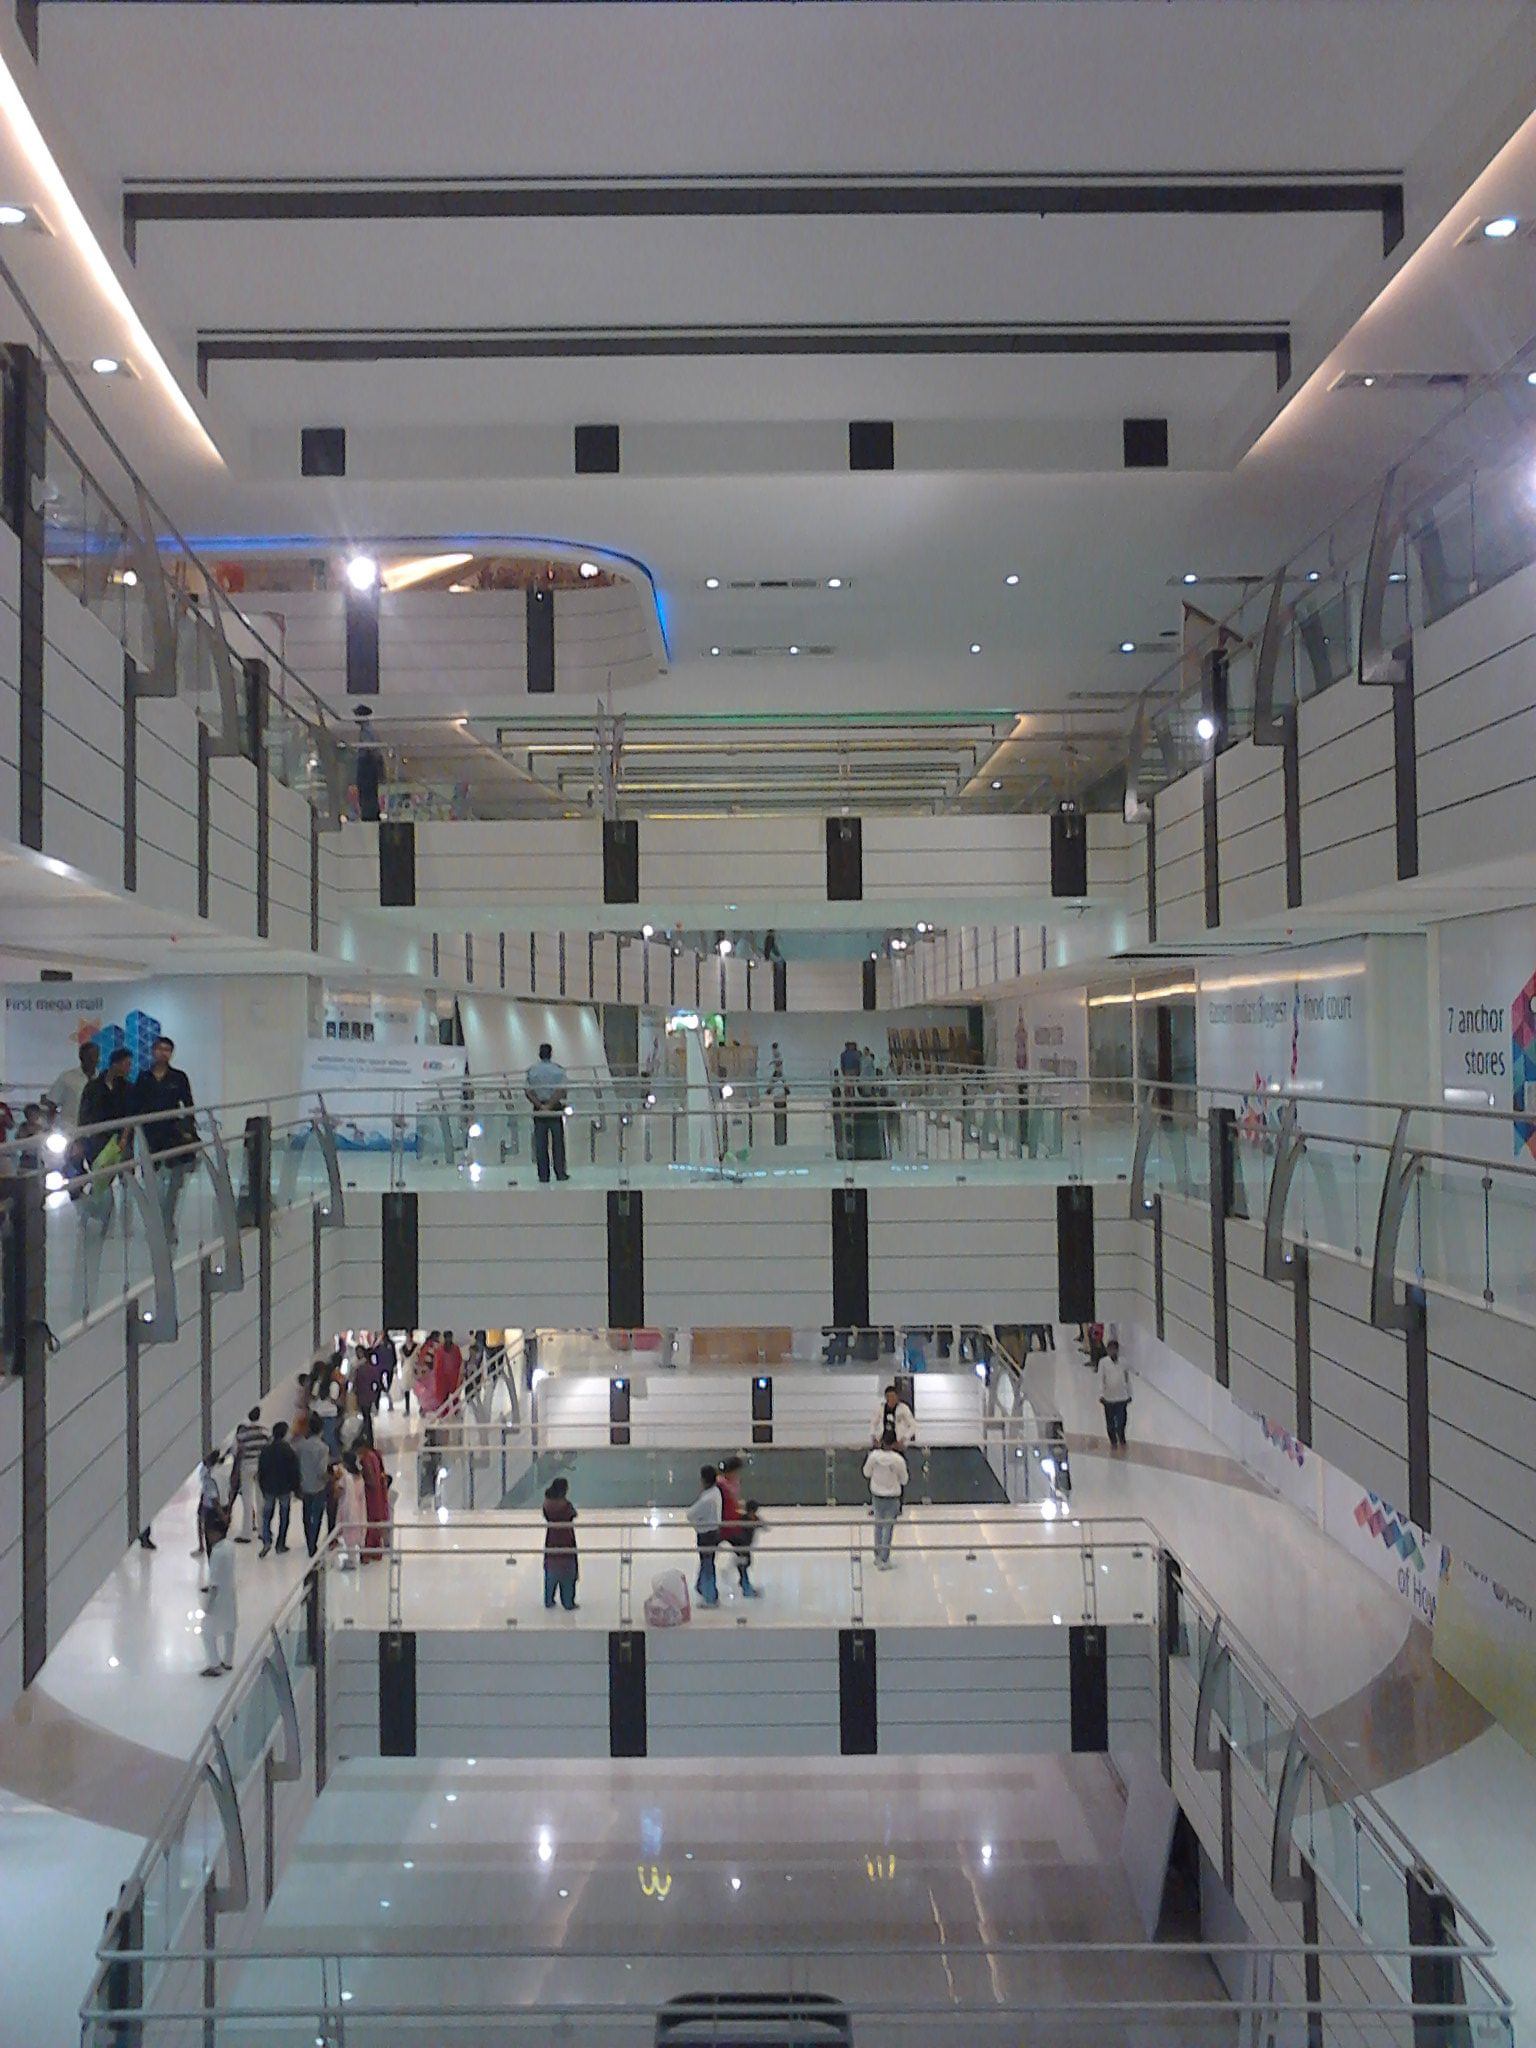 The Shops at Riverside is a two-level enclosed shopping mall, located in Hackensack, in Bergen County, New Jersey, United States, off Route 4, along the Hackensack River. The mall has a Gross leasable area (GLA) of , sq ft (61, m 2).